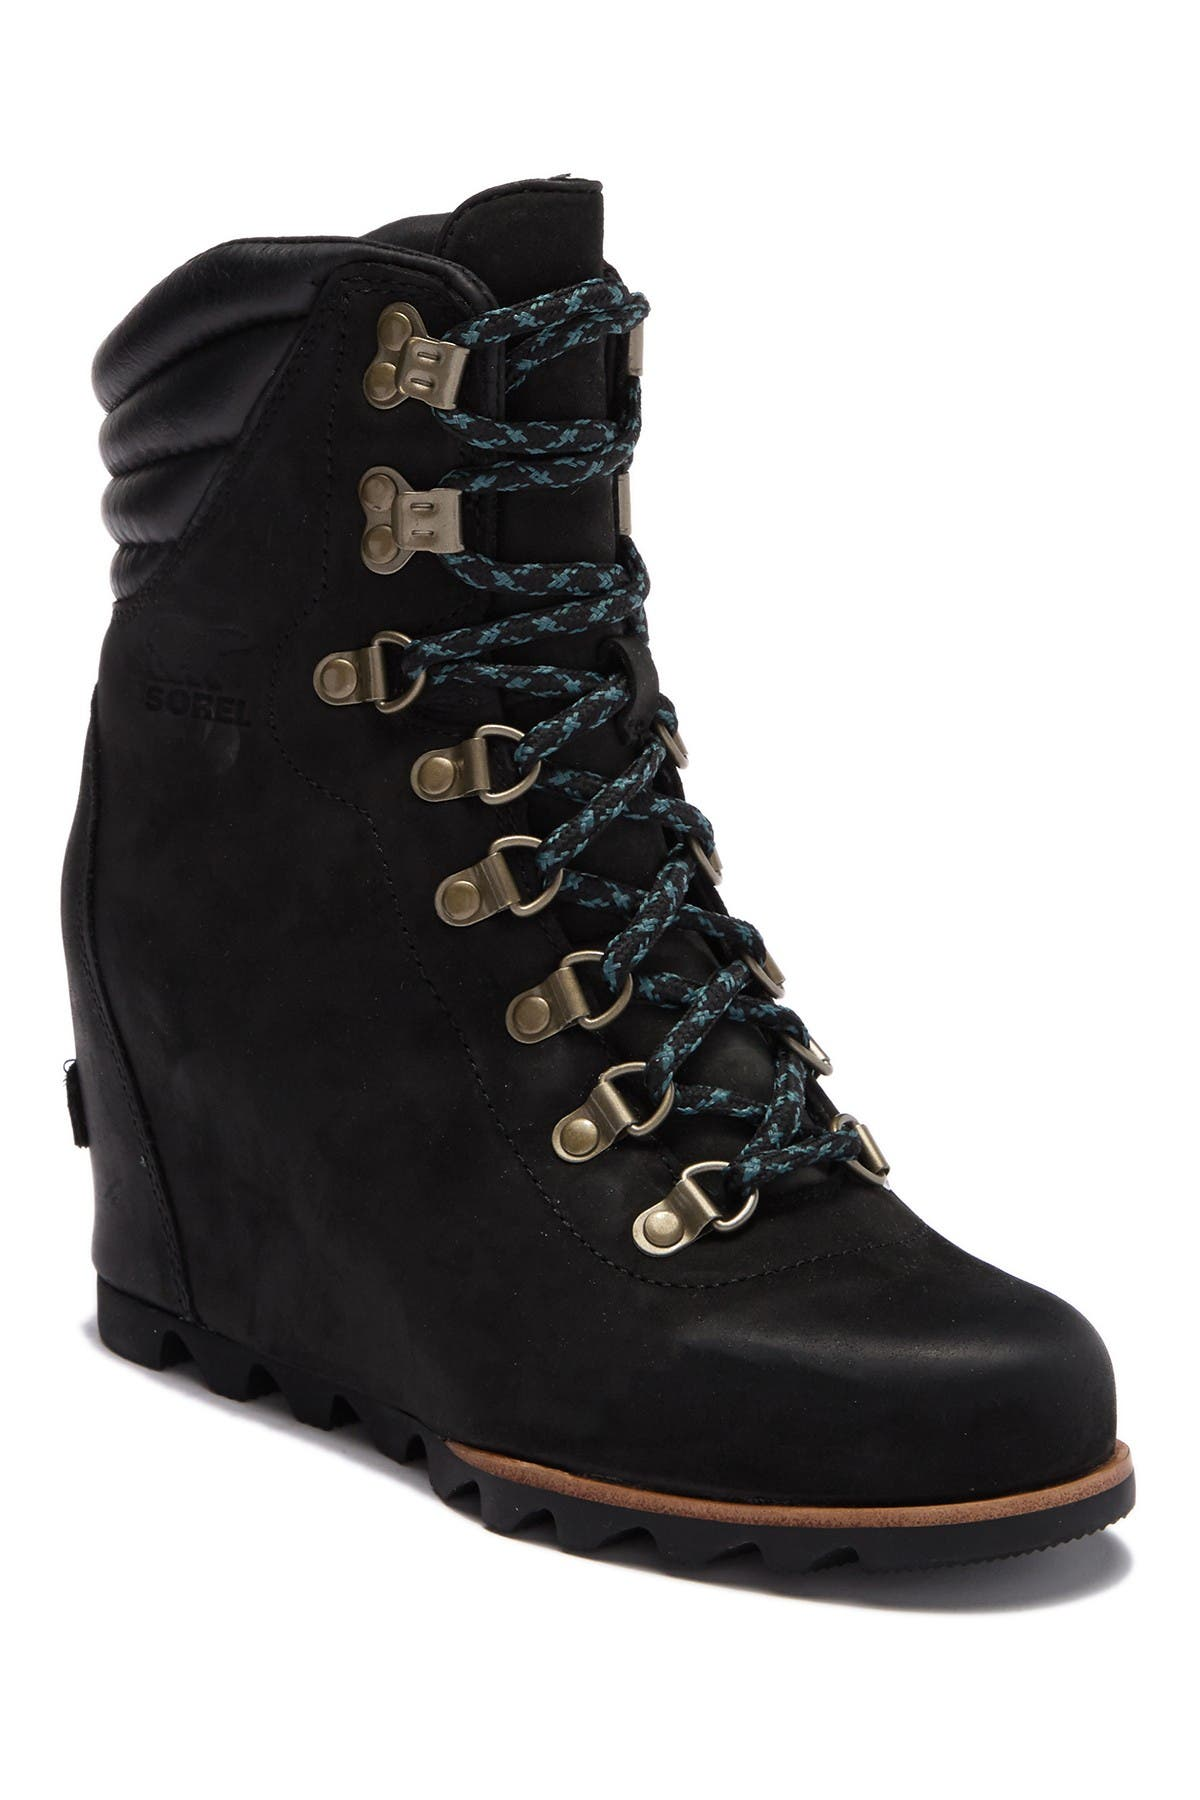 Image of Sorel Conquest Waterproof Leather Wedge Boot